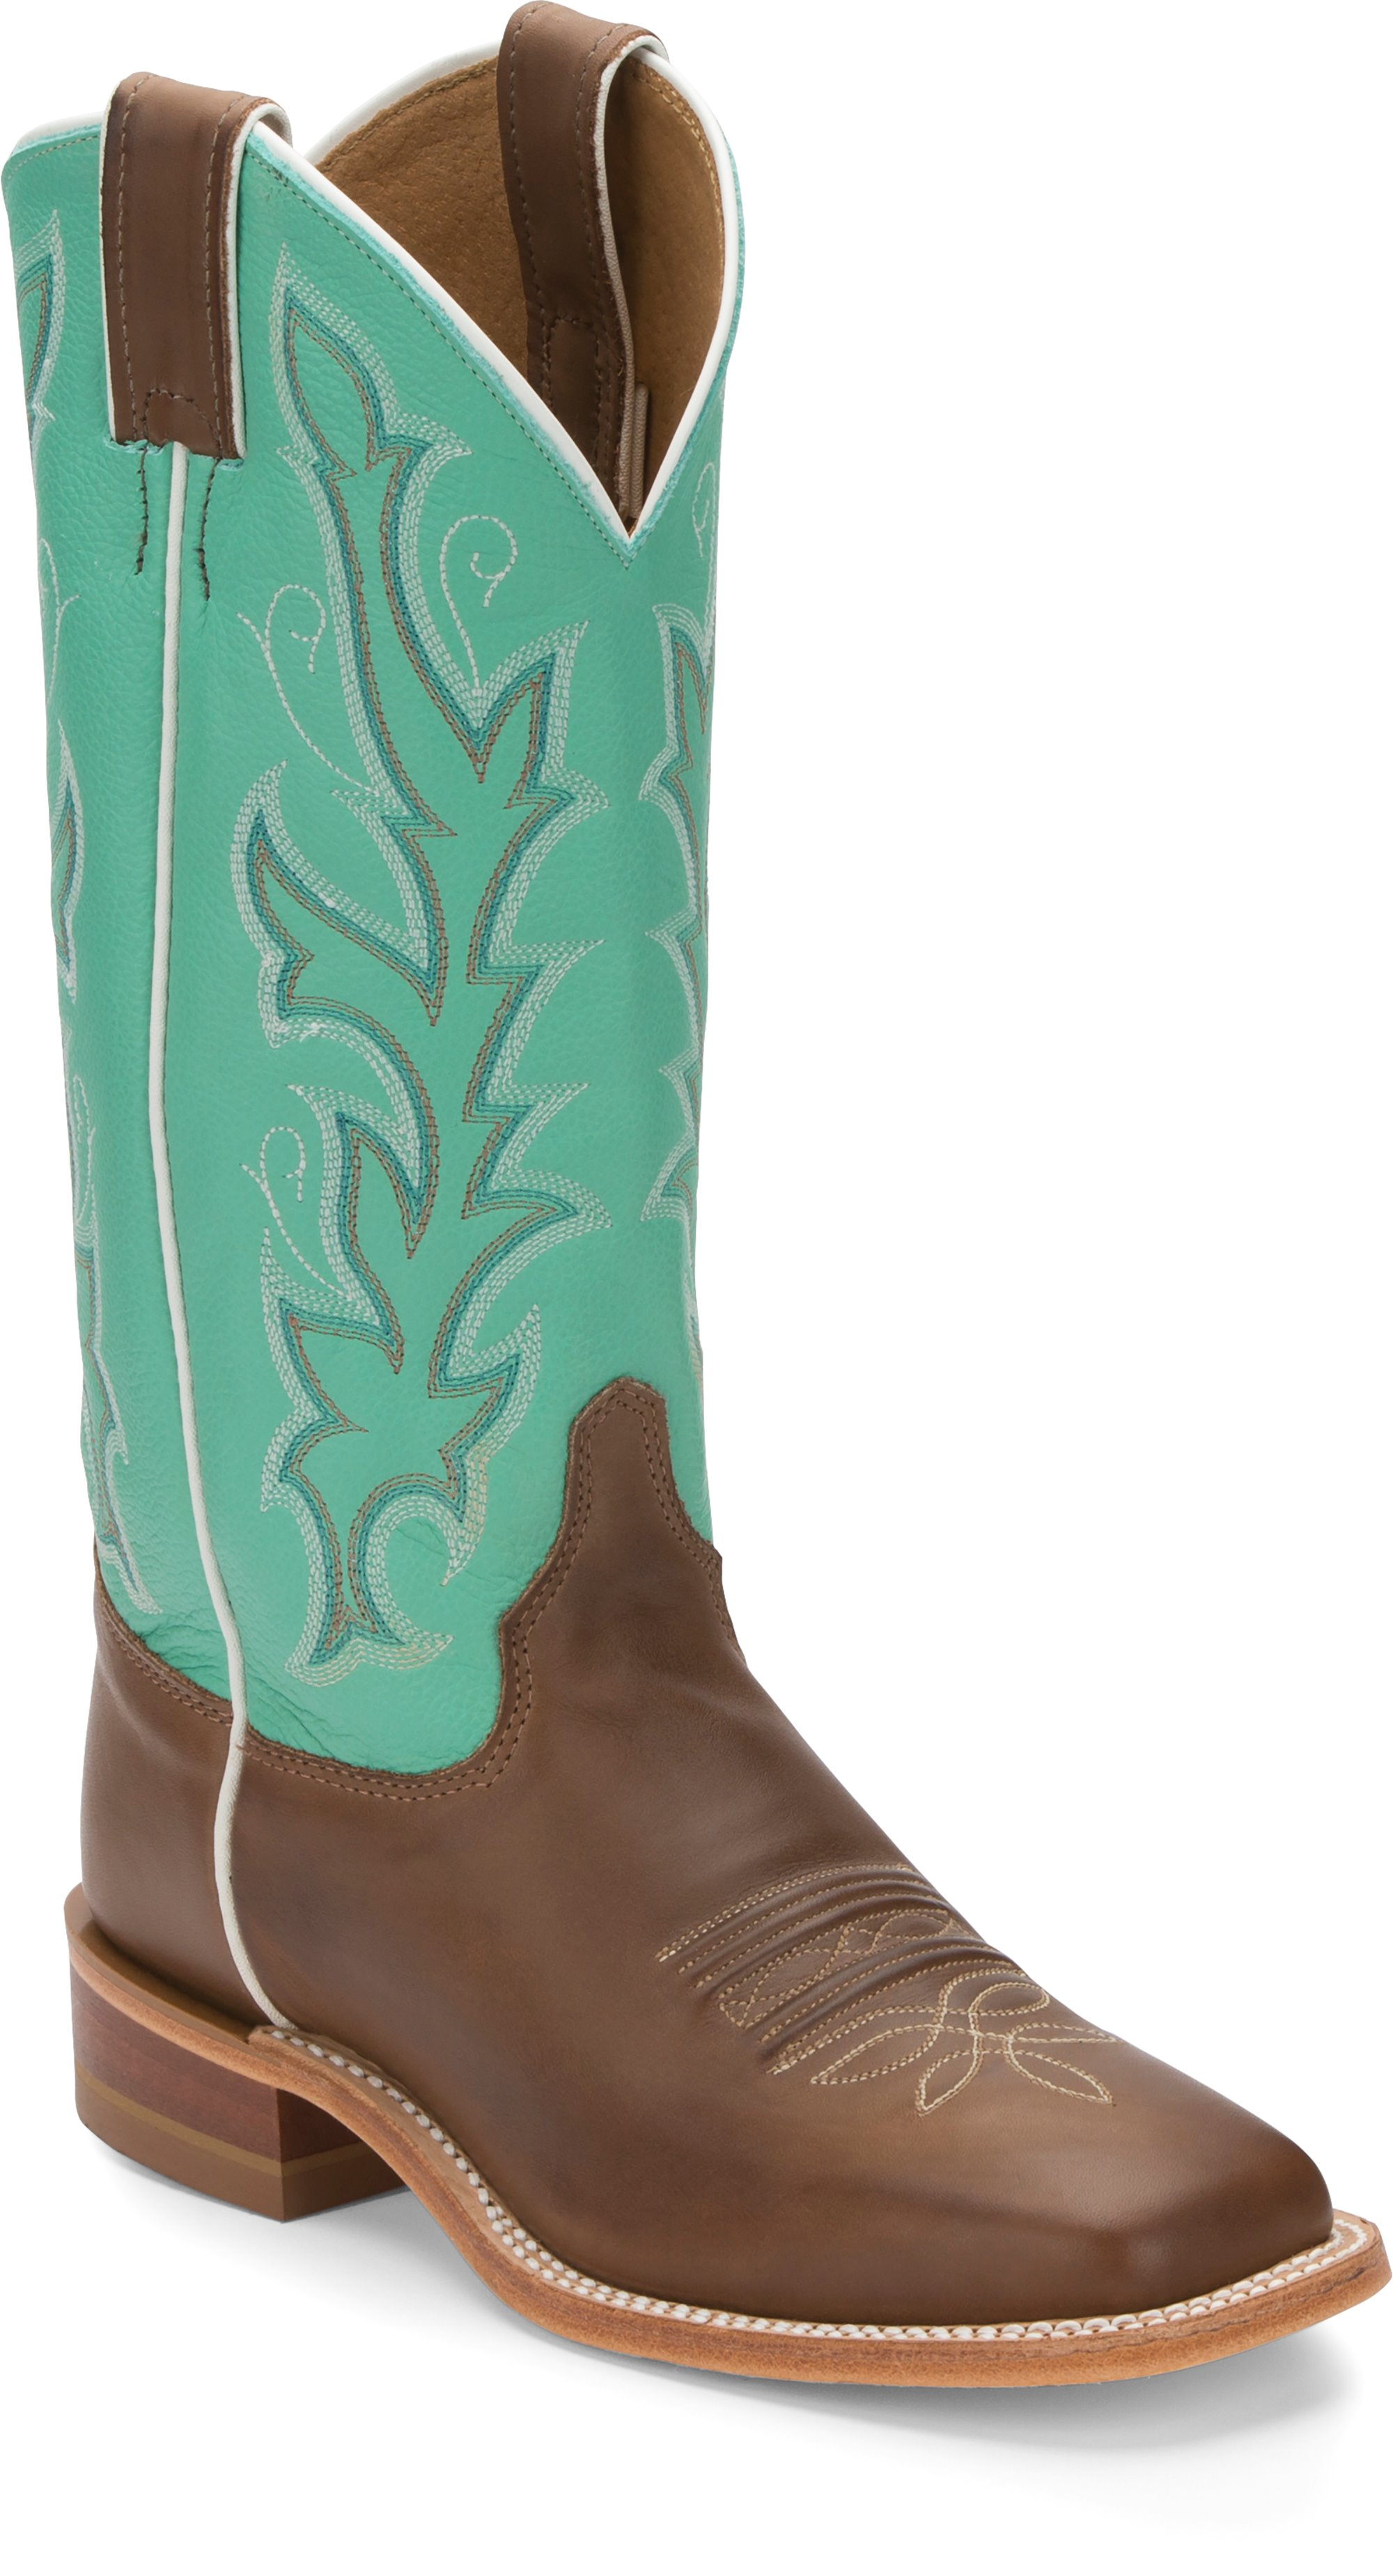 04cdc186d2f JUSTIN BOOTS #BRL310 ALBANY SEAGREEN